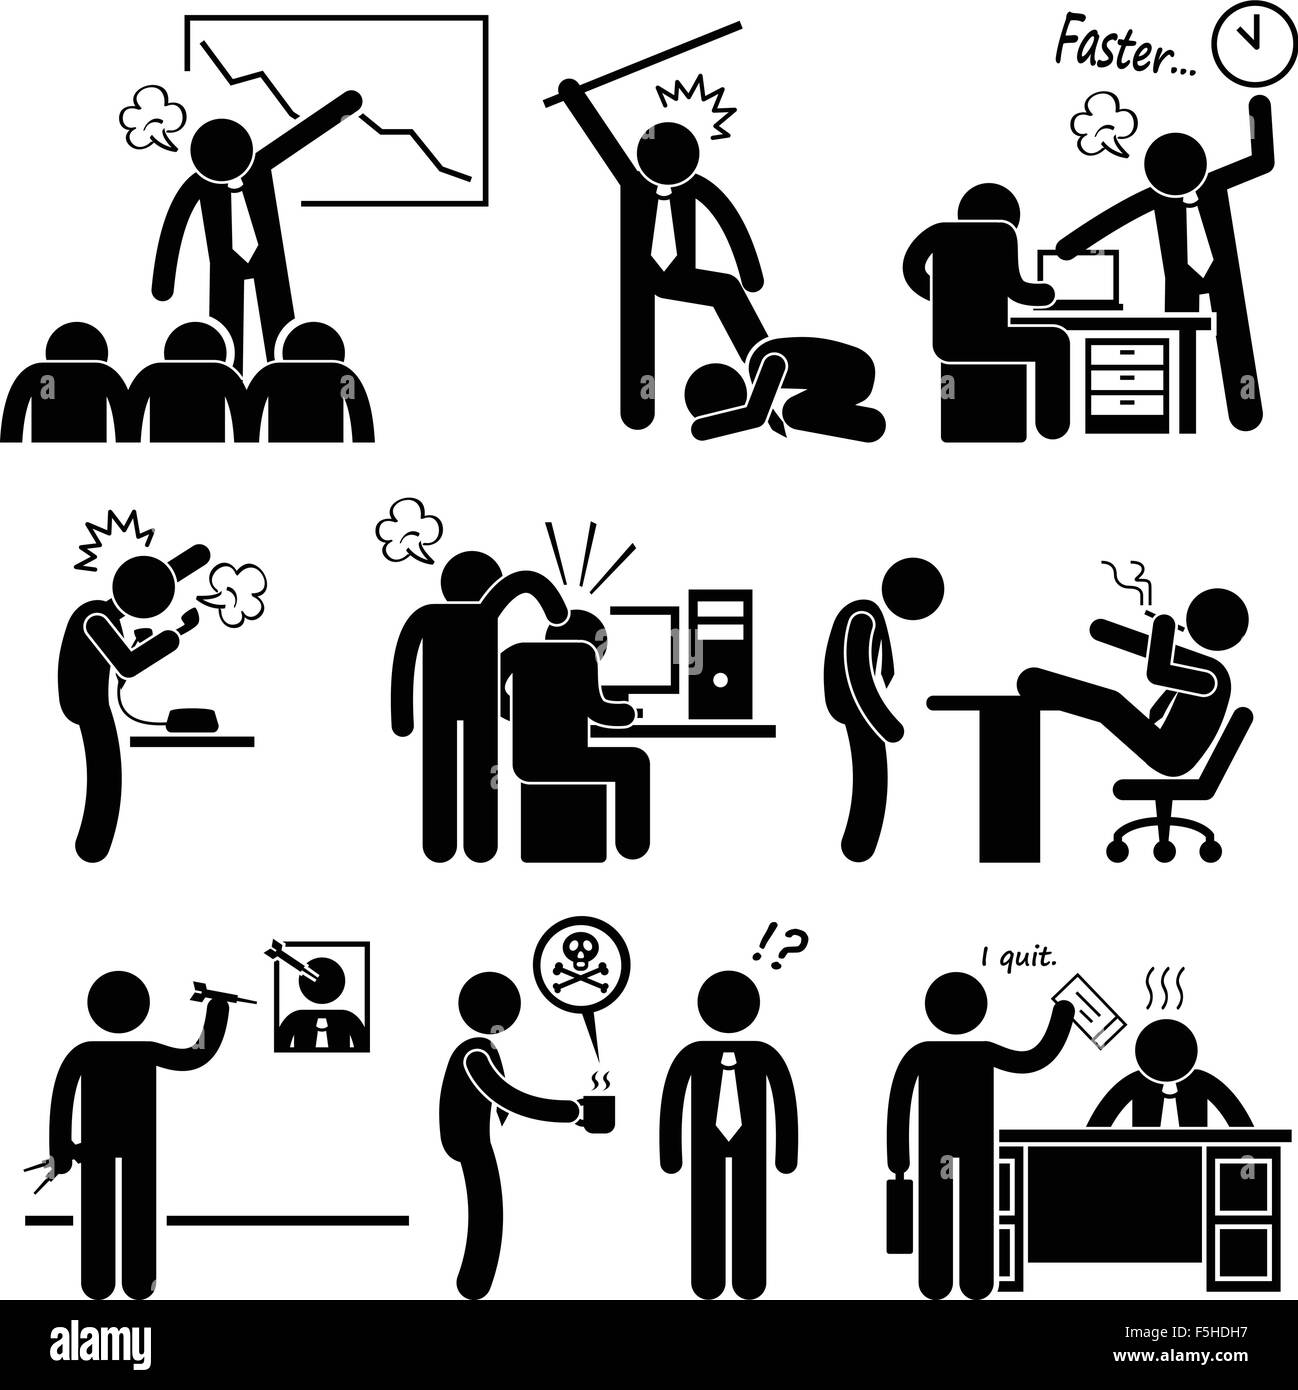 Angry Boss Abusing Employee Stick Figure Pictogram Icon - Stock Vector